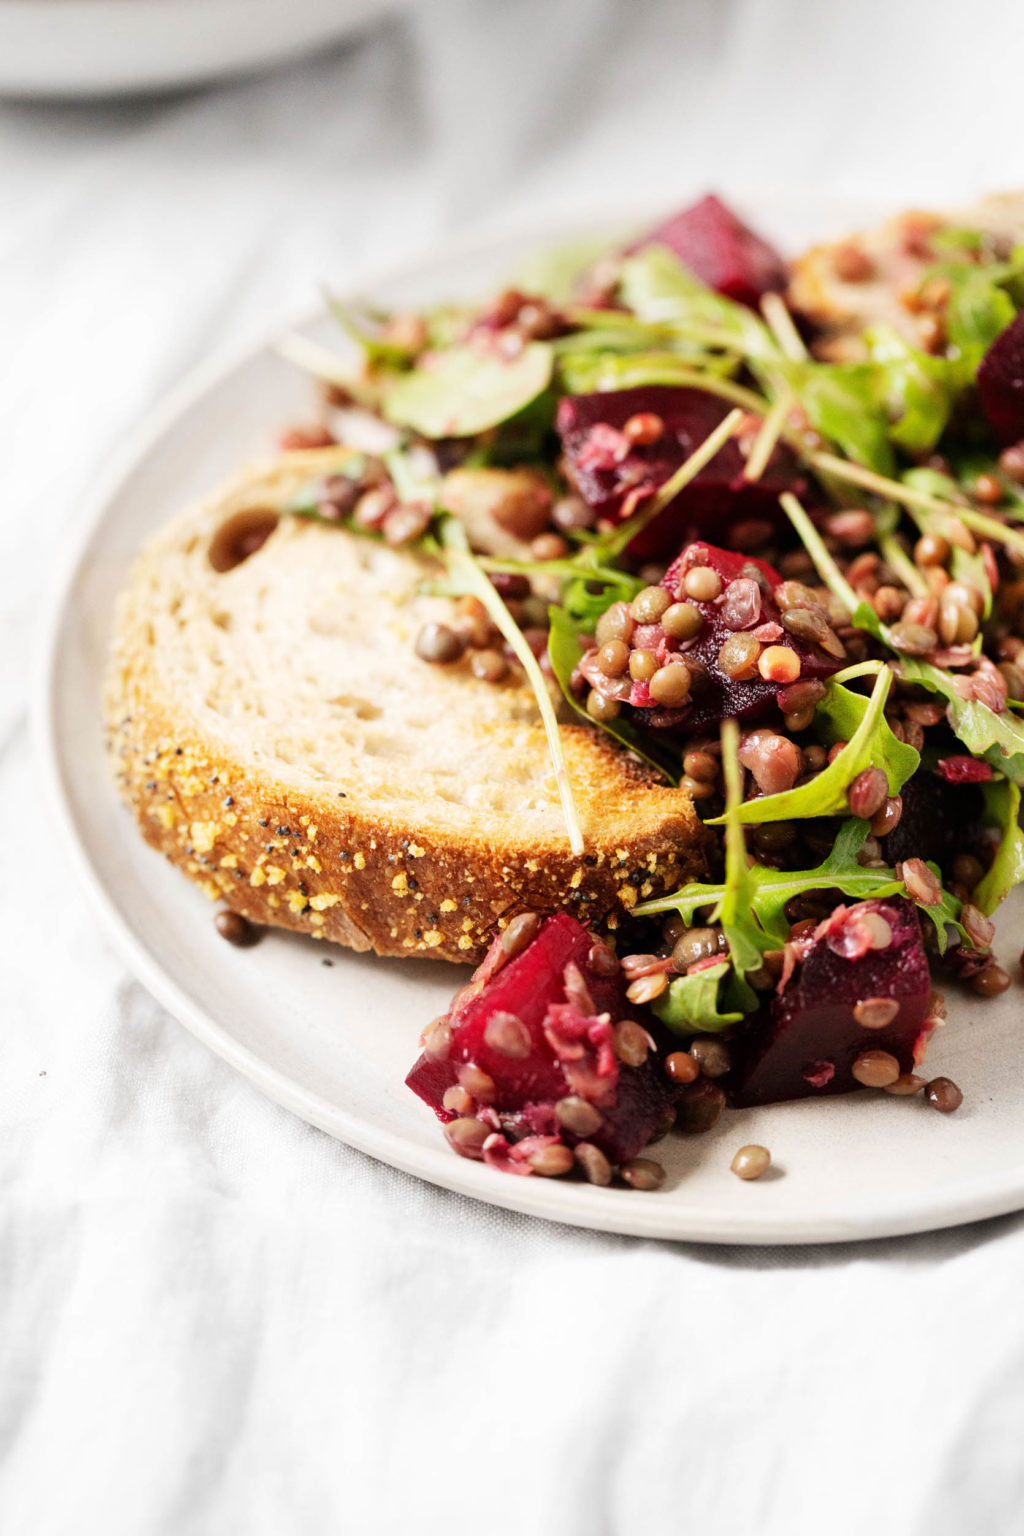 A zoomed in image of a slice of seeded bread, which has been piled with the leftovers of a lentil beet salad.